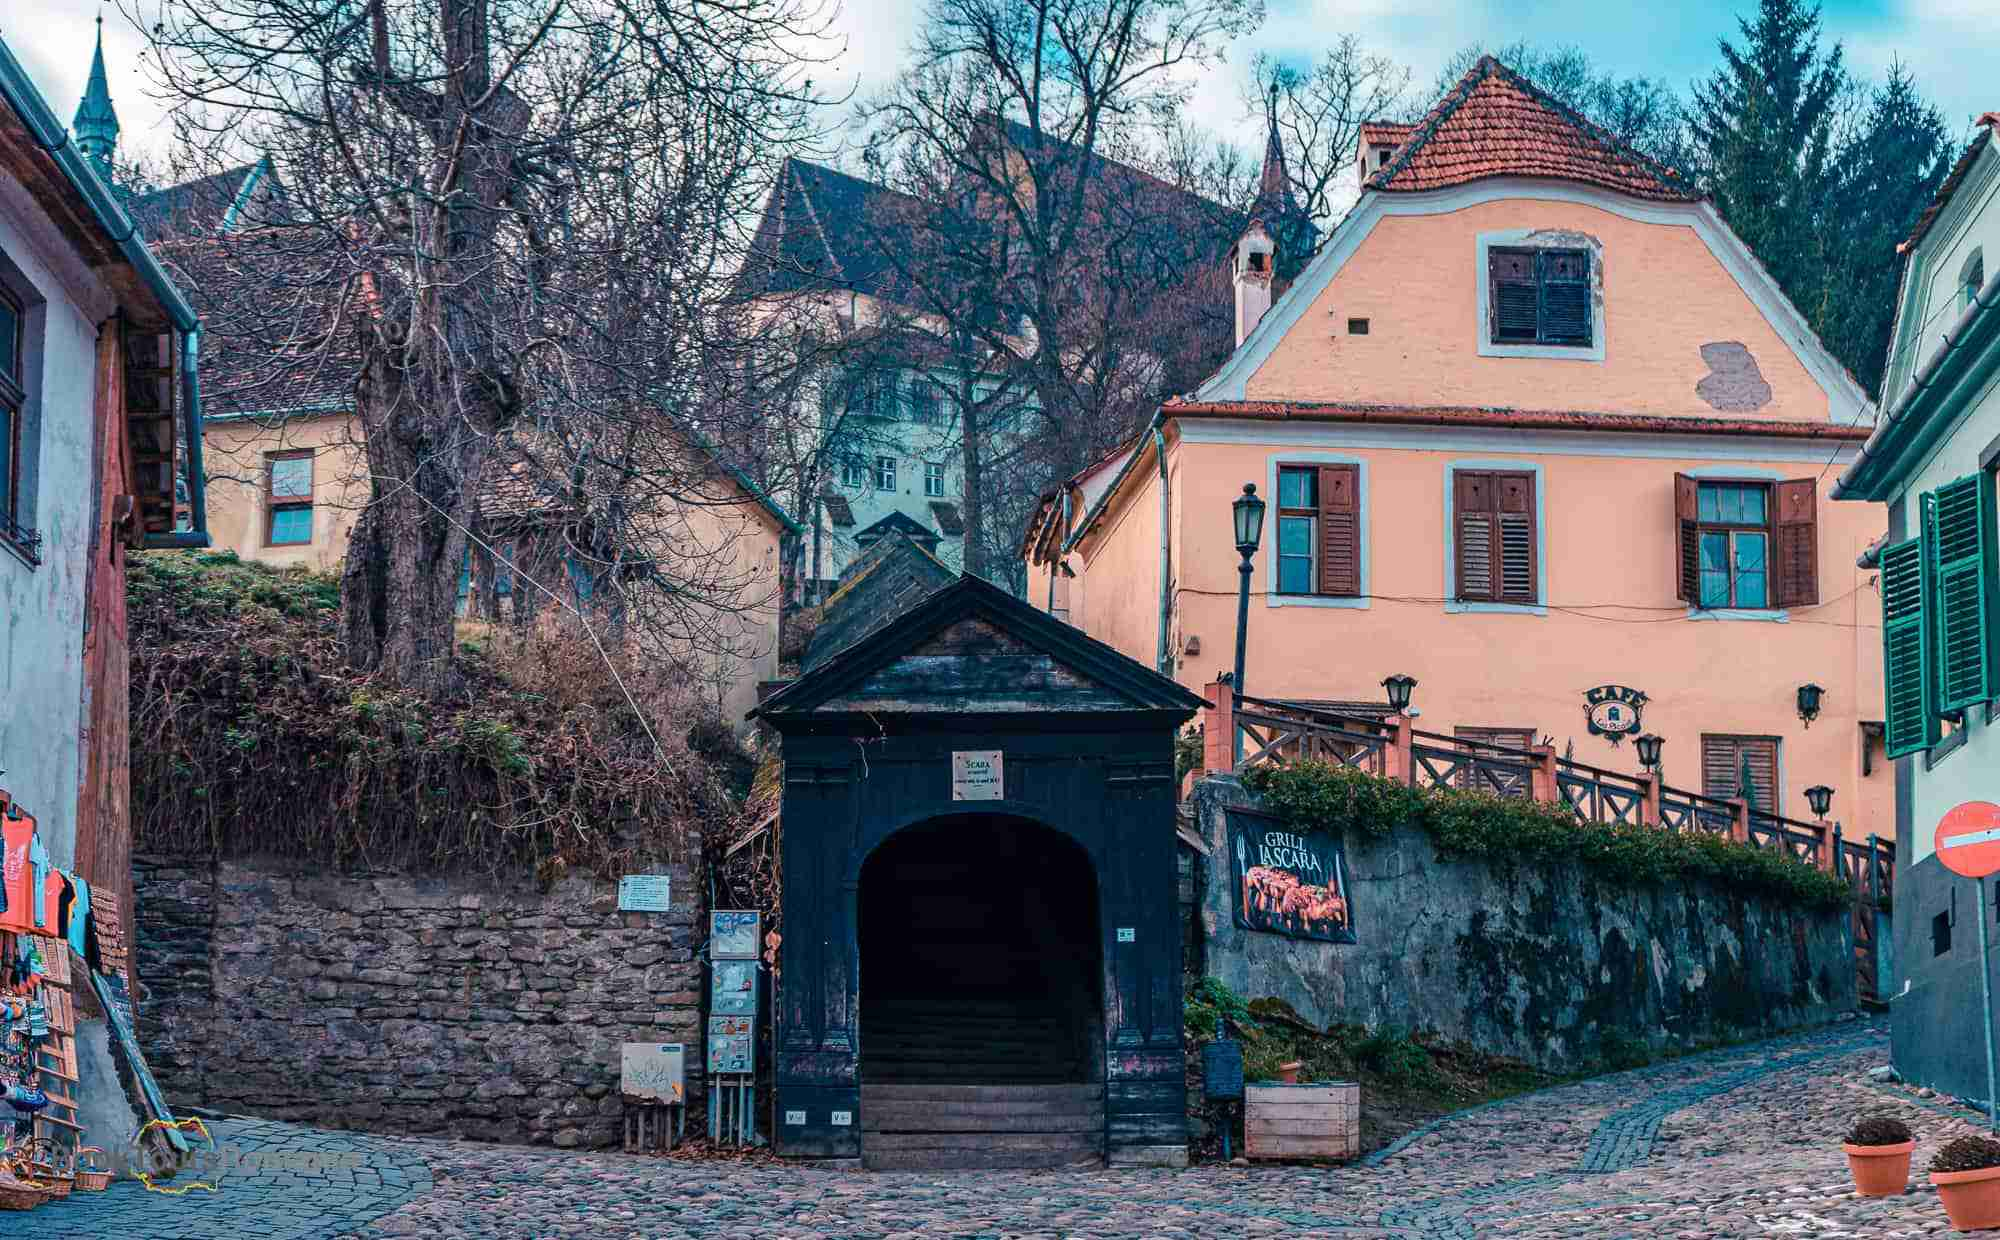 Scholars' Staircase of Sighisoara